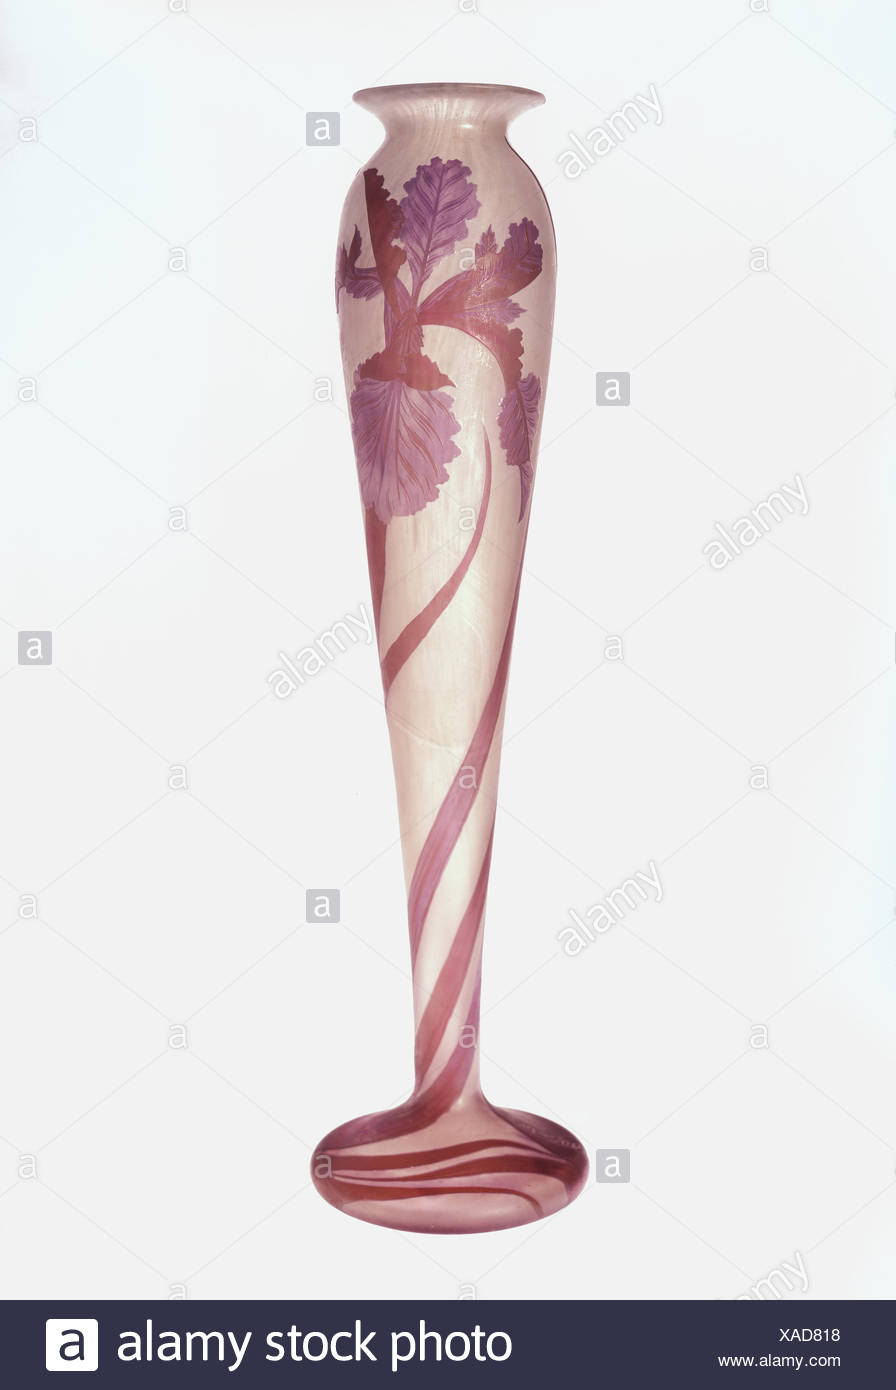 fine arts, vessels, vase, by Emile Galle (1846 - 1904), glass, height 49 cm, France, 1904, private collection, - Stock Image